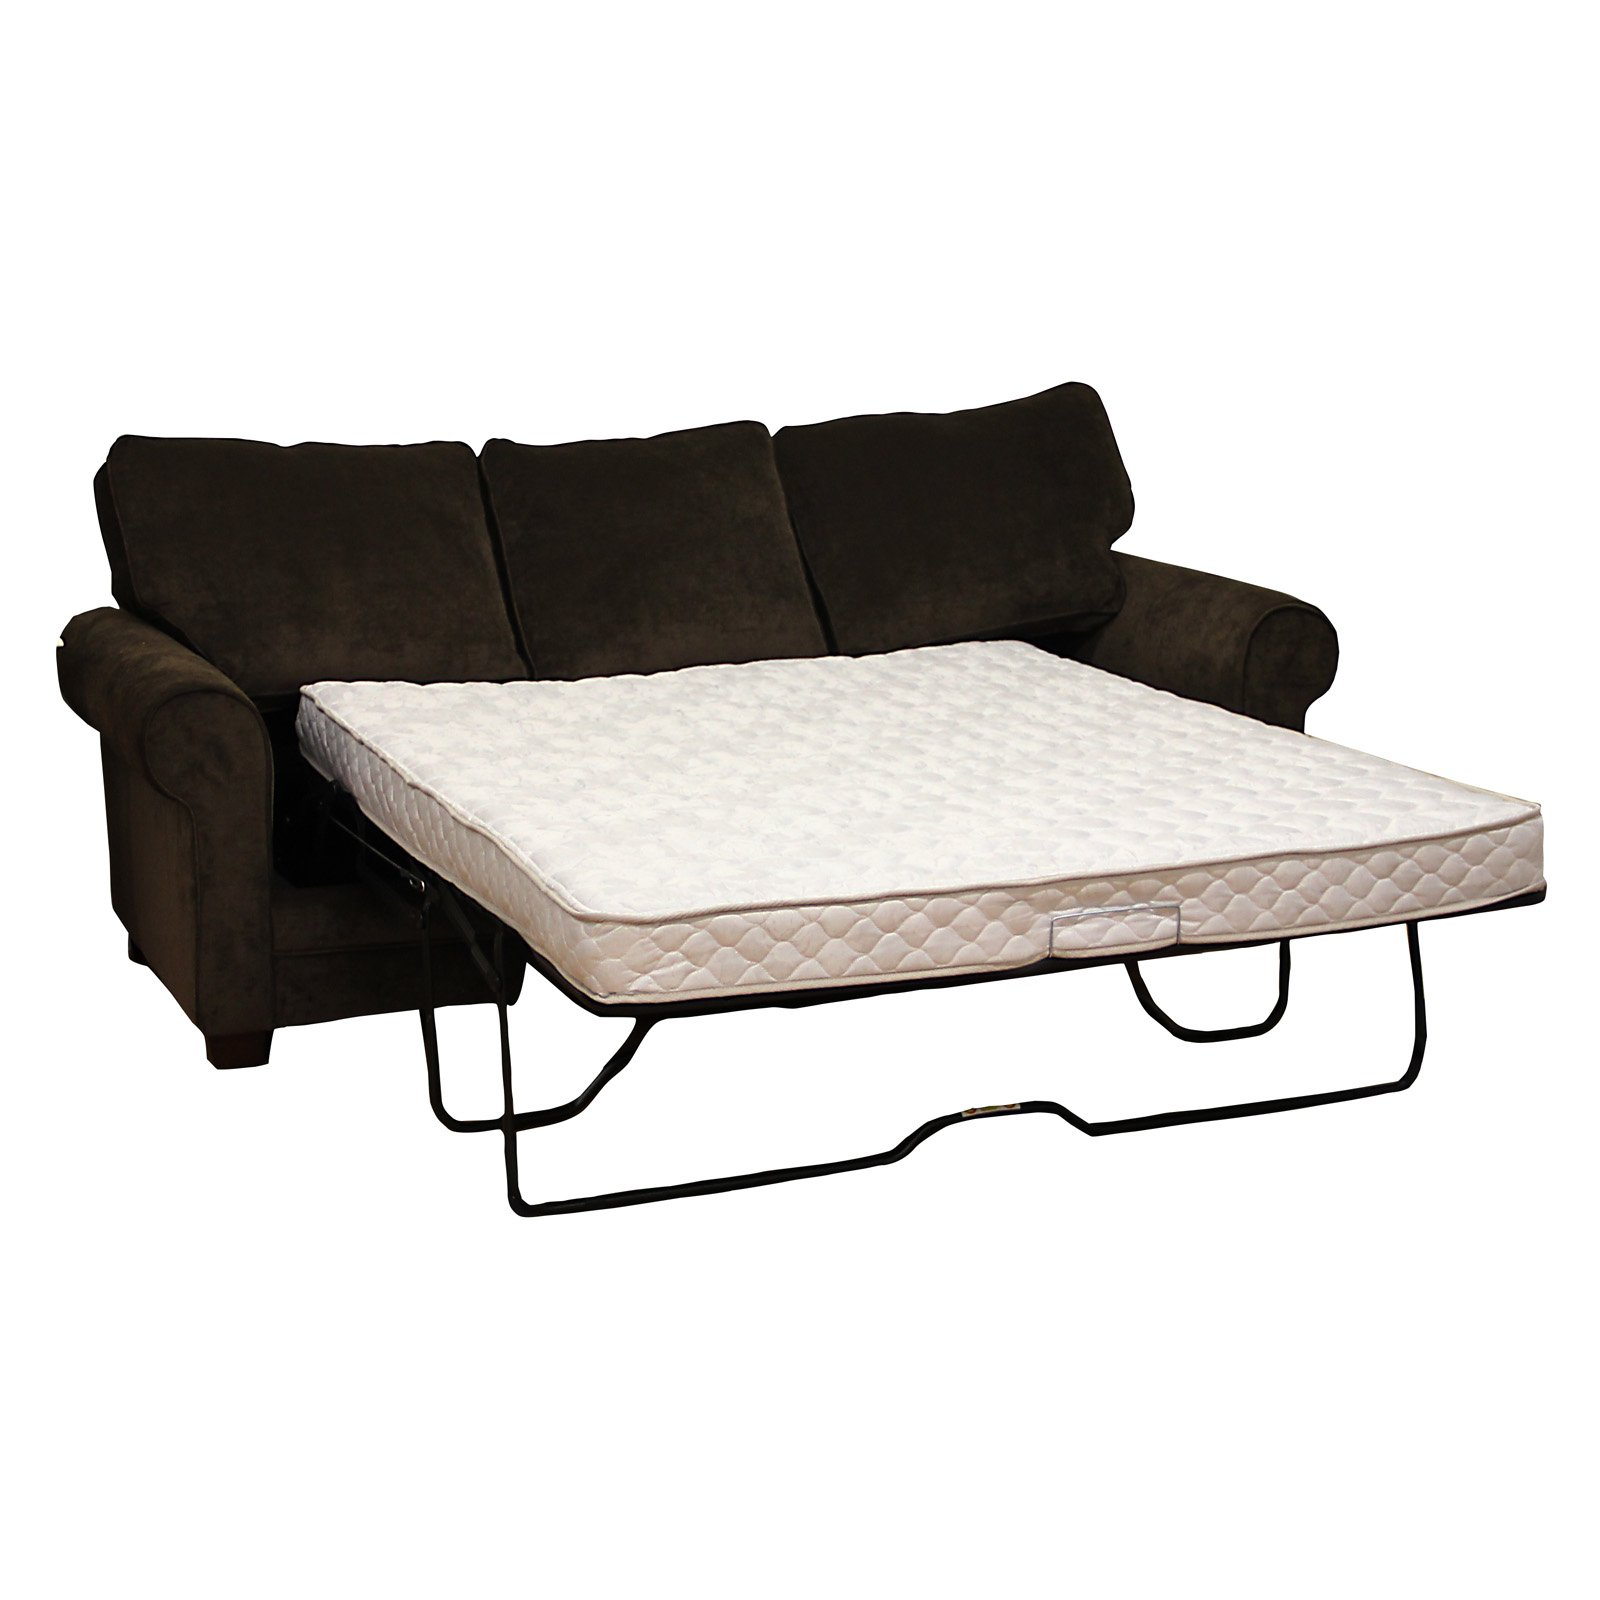 Charmant Plush Sofa Bed Mattress   Walmart.com